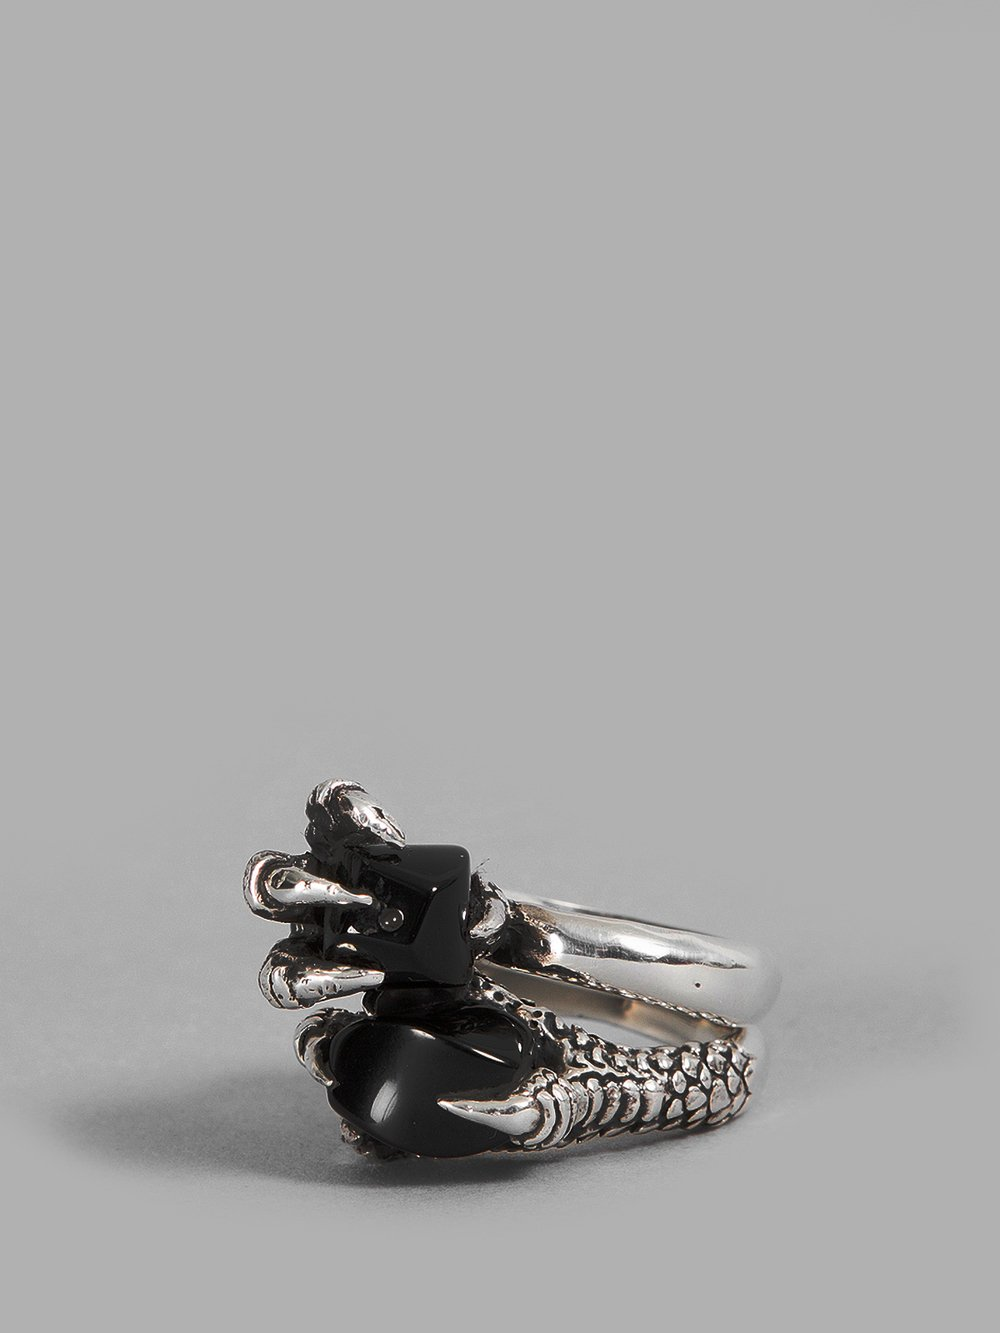 KD2024 Kd2024 Silver Set Human Claw Rings in Two Rings With Claw And Black Stone